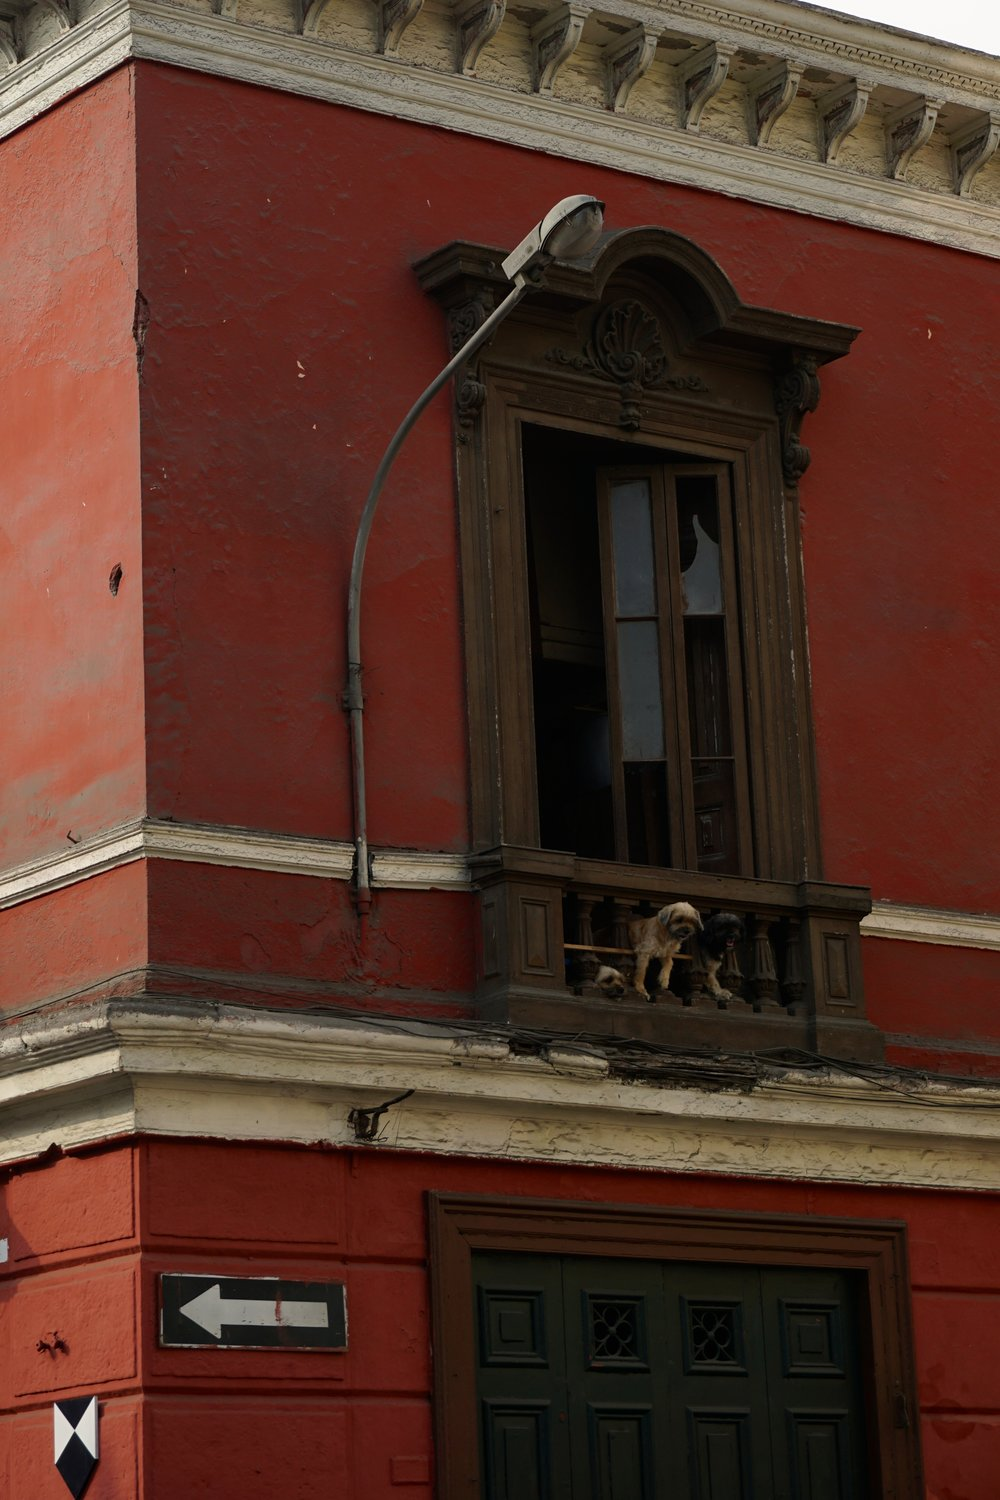 Three dogs in a balcony in Lima's historic core.